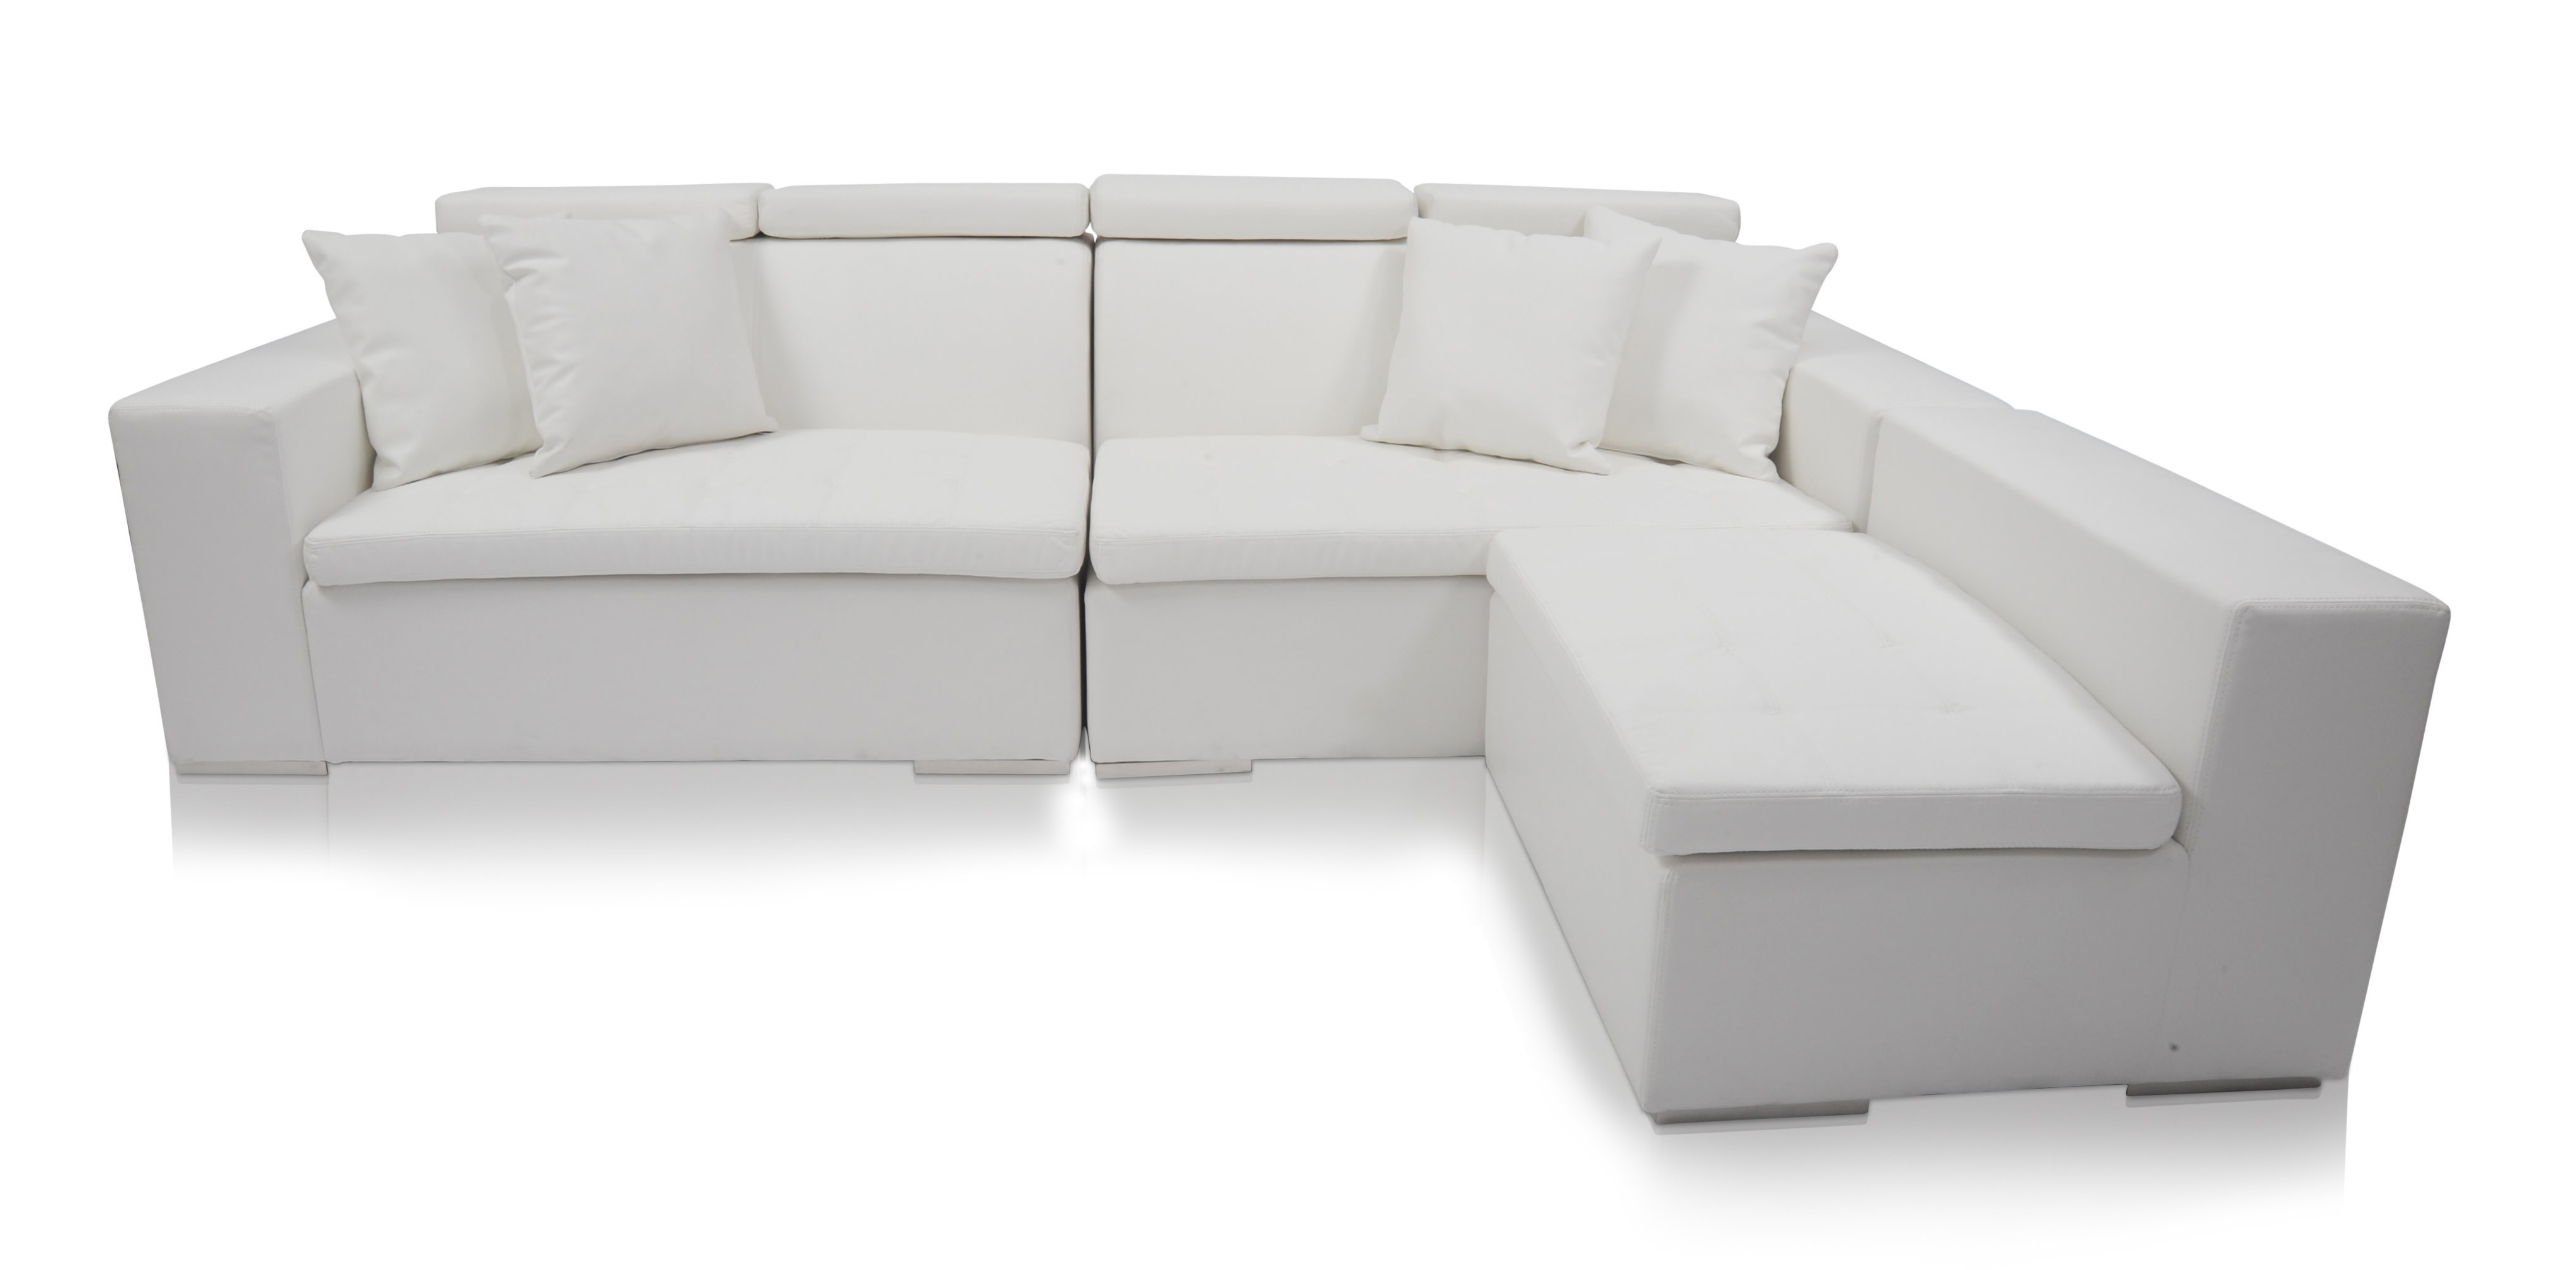 Latest Sectional Modern Sofa Interior White Button Leather Furniture Intended For Sectional Sofas At Bc Canada (View 14 of 20)